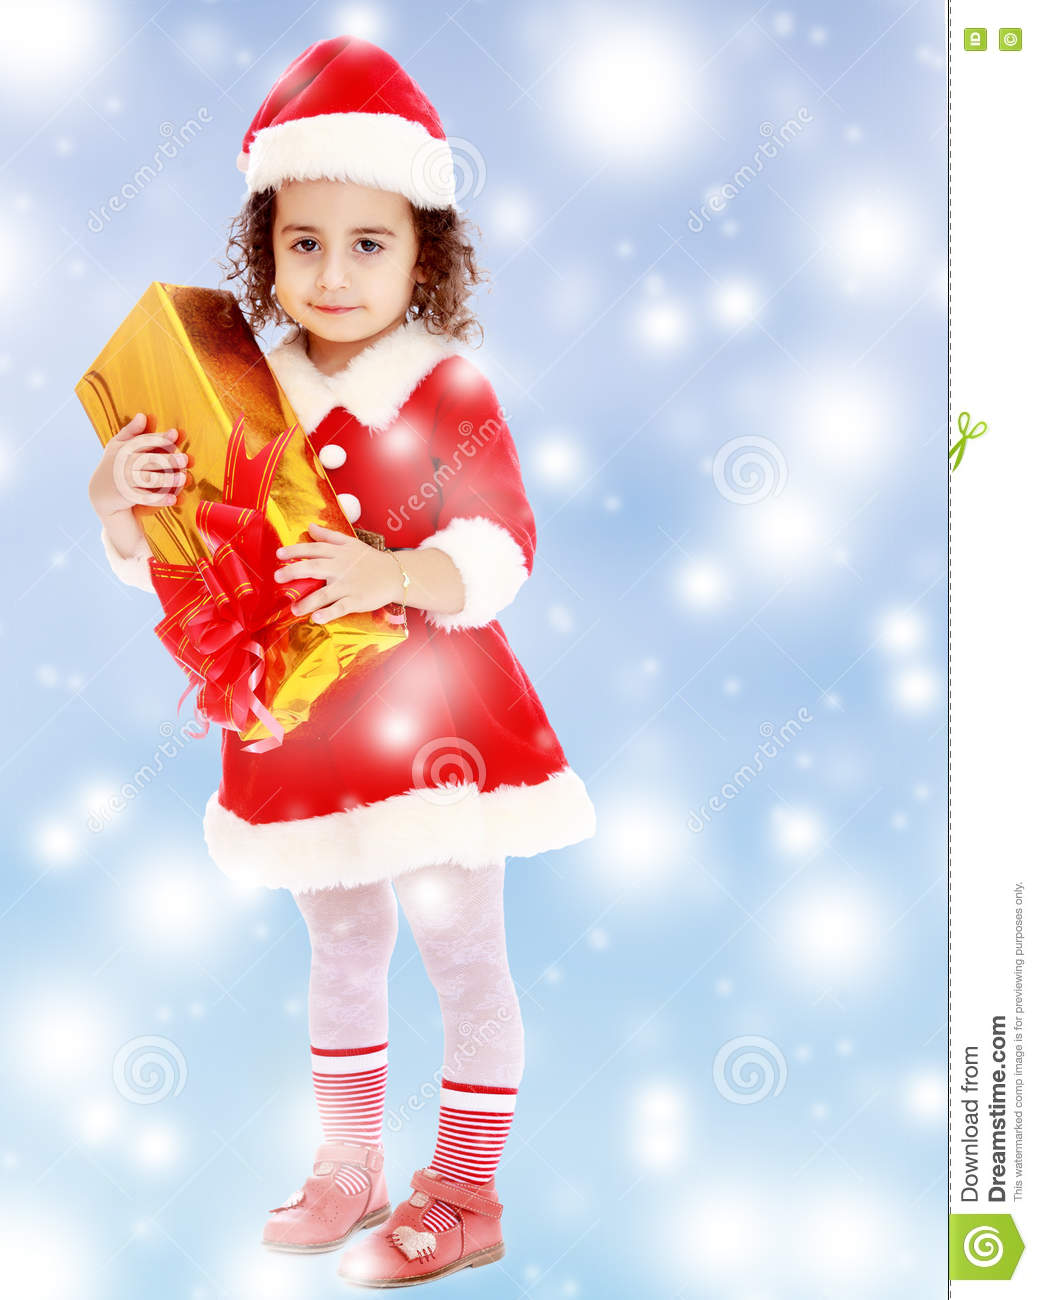 627e4a118f04 Little Girl In Costume Of Santa Claus With Gift Stock Photo - Image ...